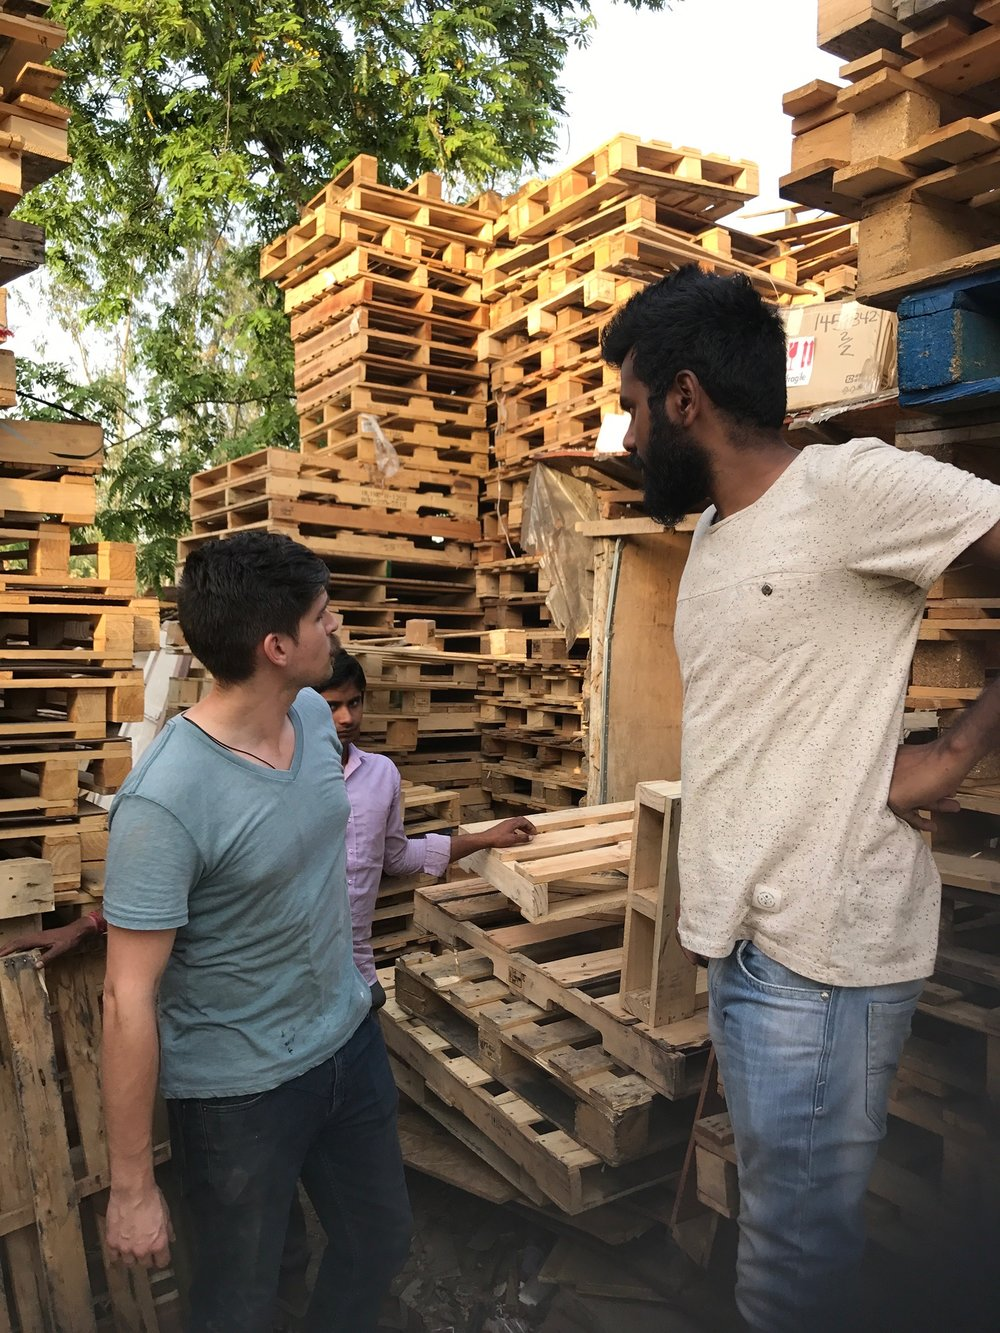 India team member Josh Nava searches for affordable local materials, to be used for a hospitality space in the G.O.D. India offices. Pallet wood furniture proved a versatile option, and is a skill that Josh has already developed over years of practice.